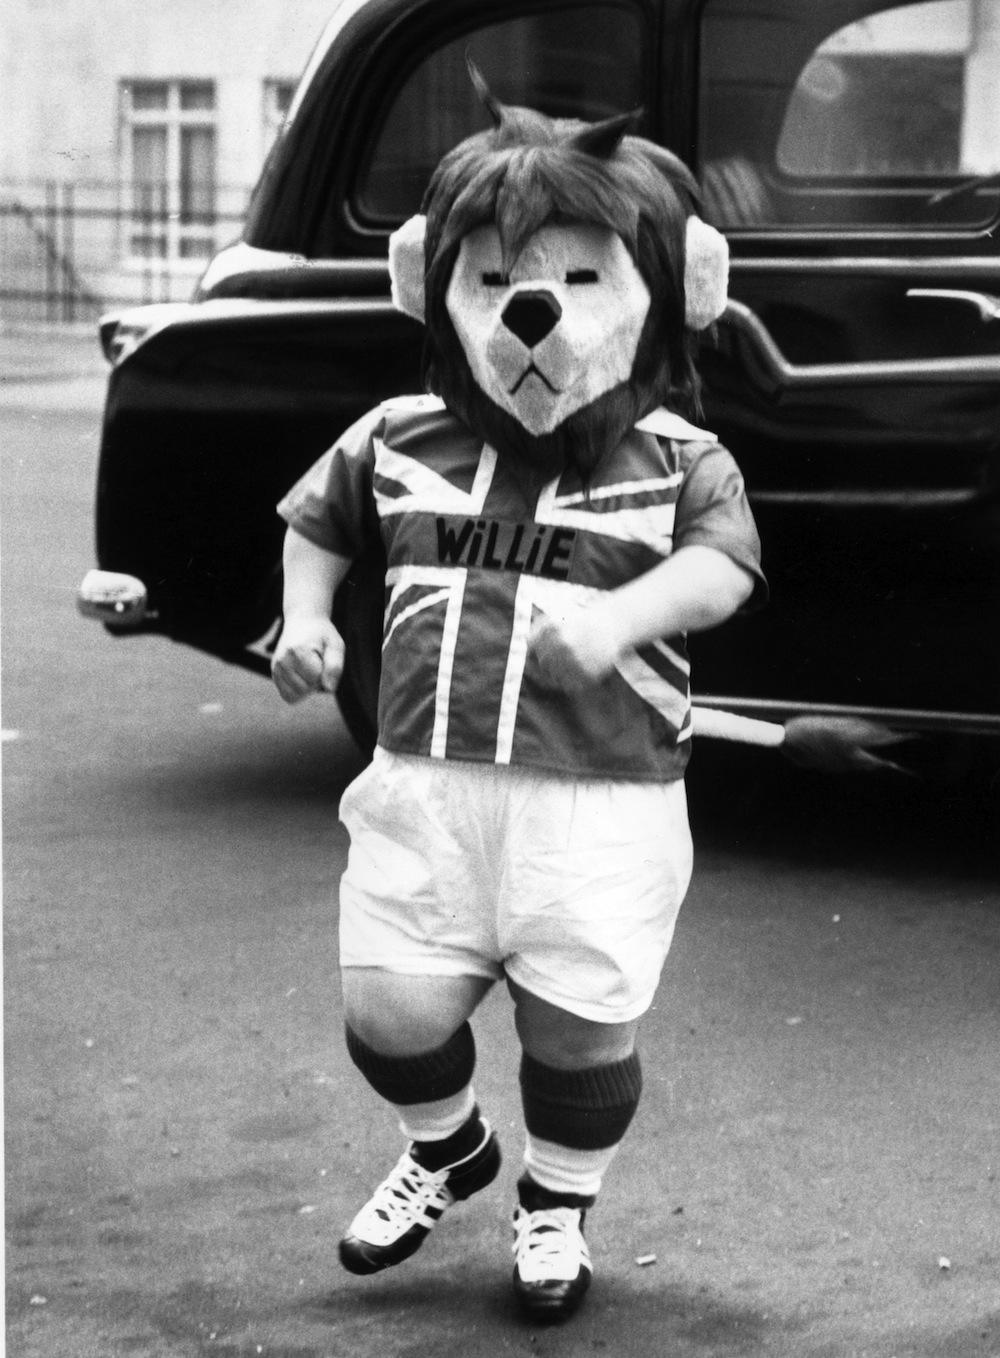 19th October 1965:  The British football team mascot World Cup Willie, played by George Claydon, arriving at the Football Association headquarters in London.  (Photo by Keystone/Getty Images)